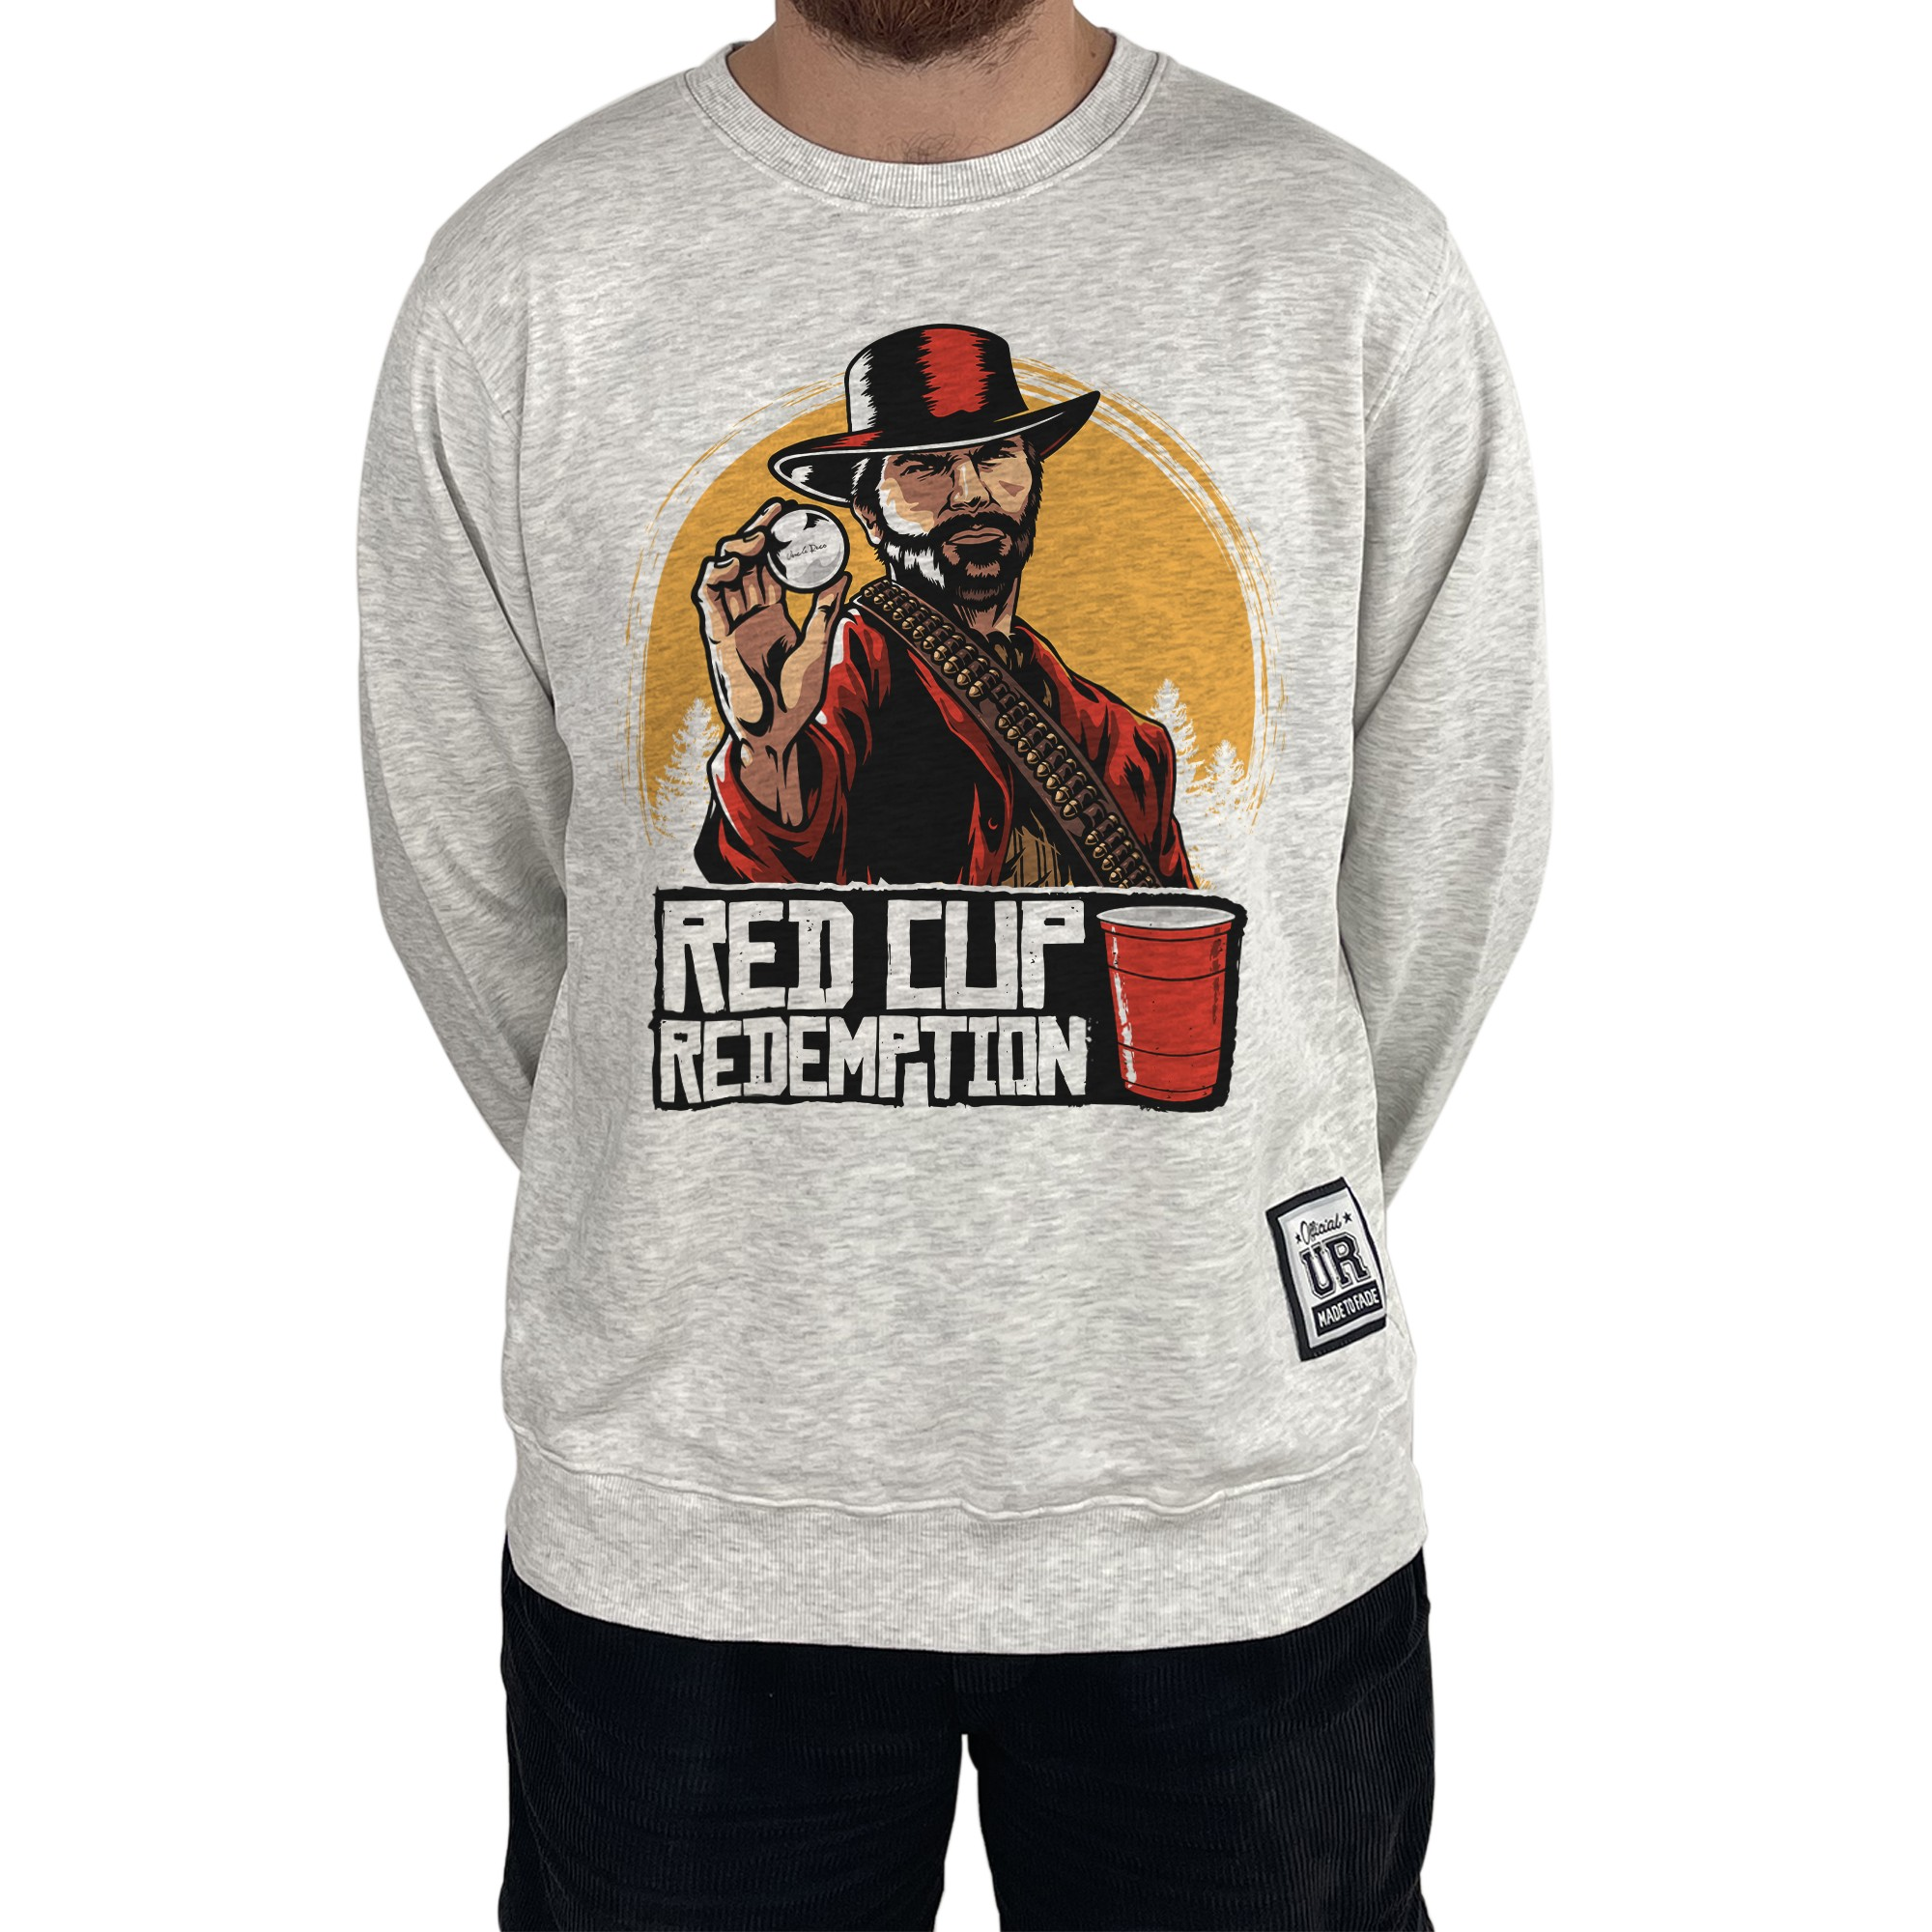 RED CUP REDEMPTION WHITE MARLE CREW